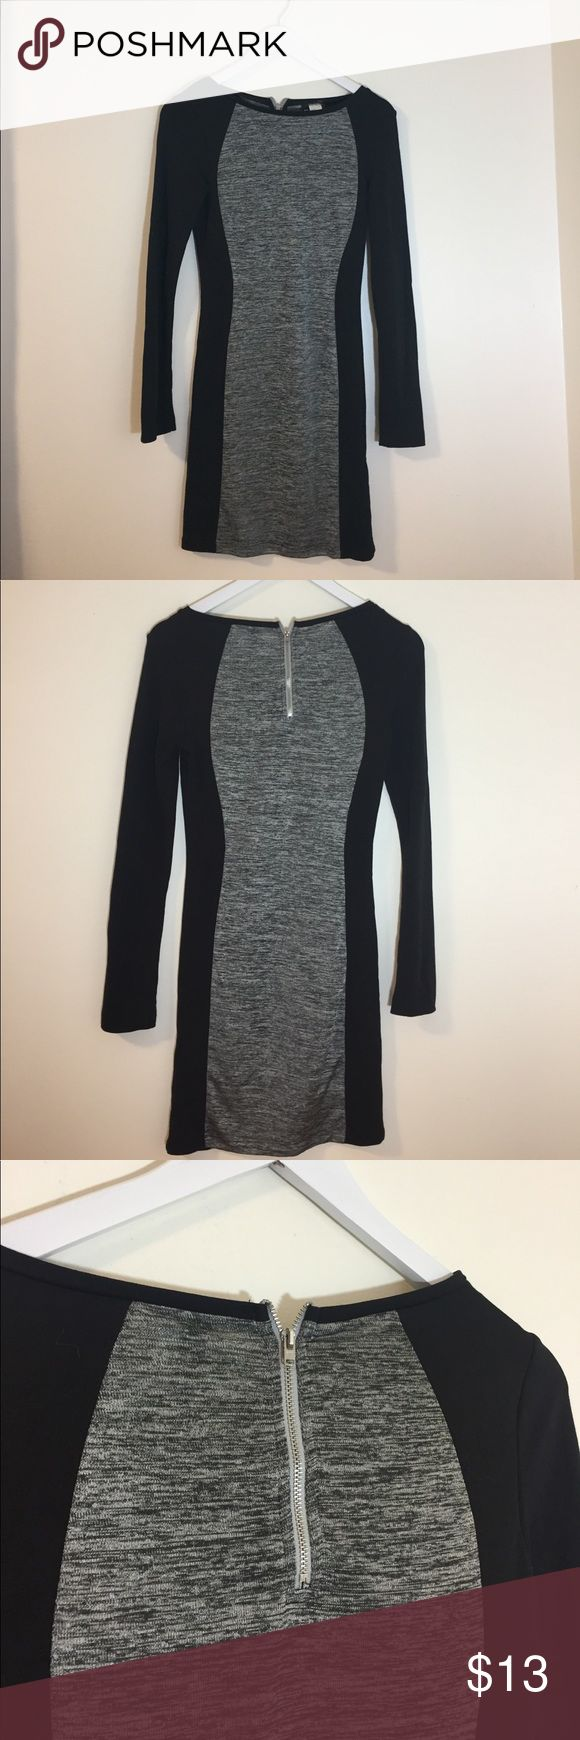 H&M Heather Grey and Black bodycon dress H&M Heather Grey and Black bodycon dress  Perfect little black and grey dress!  Business professional to going out!  Super flattering silhouette H&M Dresses Mini